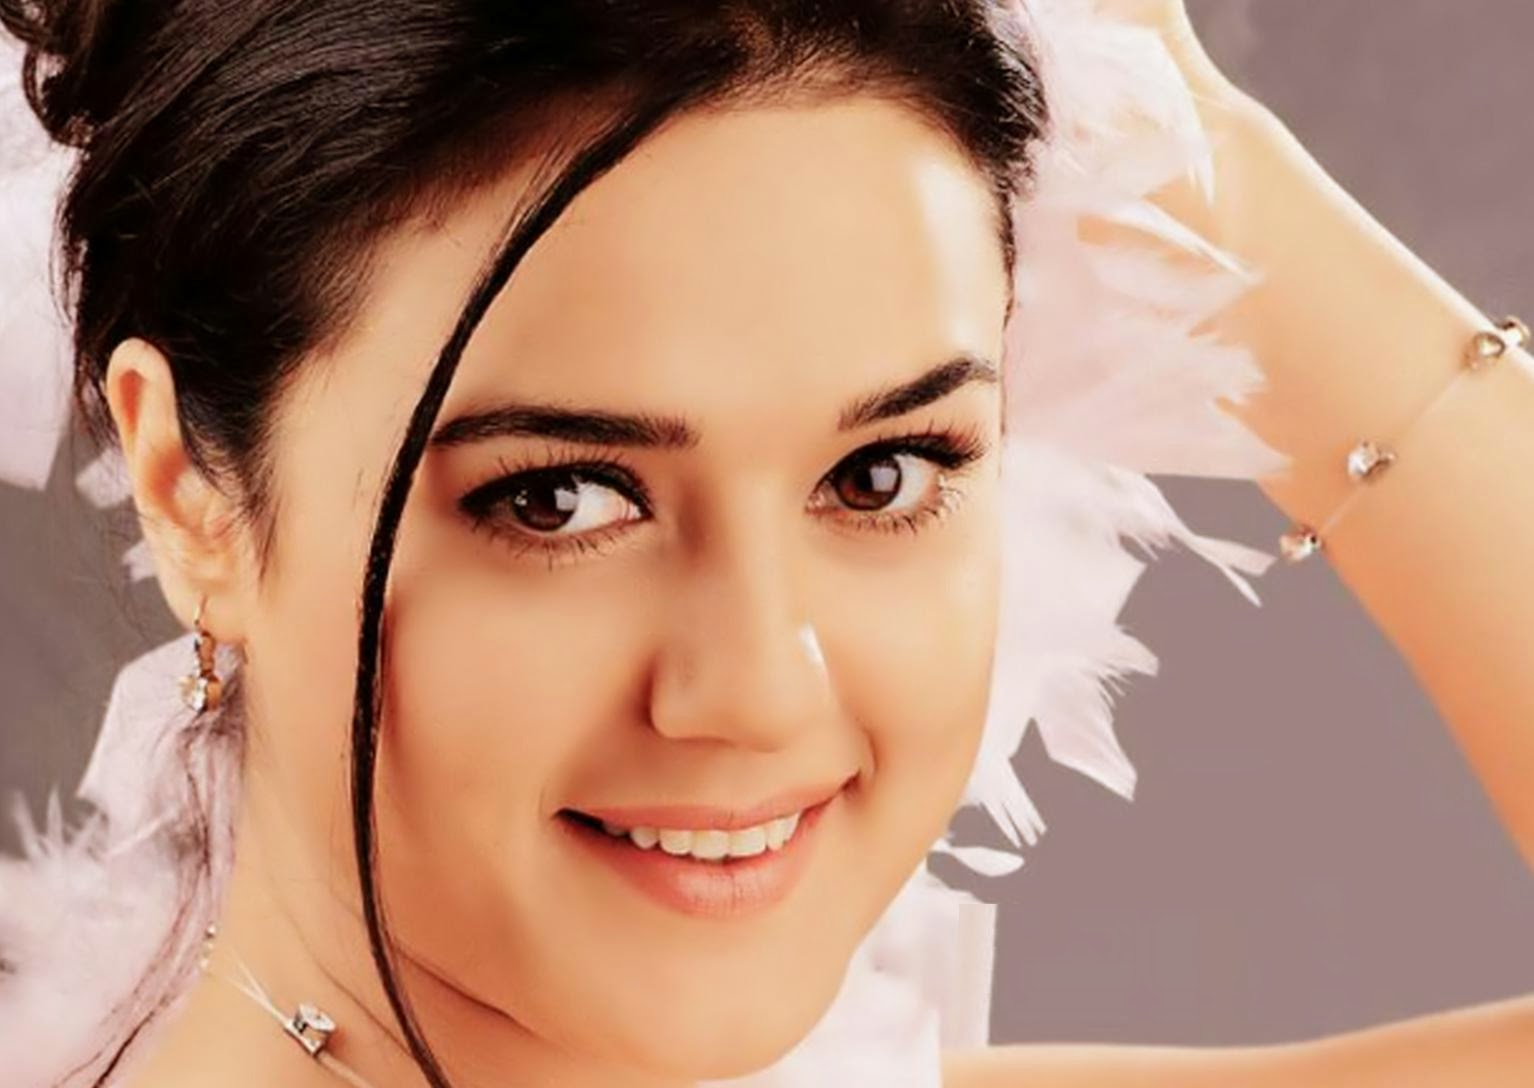 Preity Zinta Wallpapers Free Download